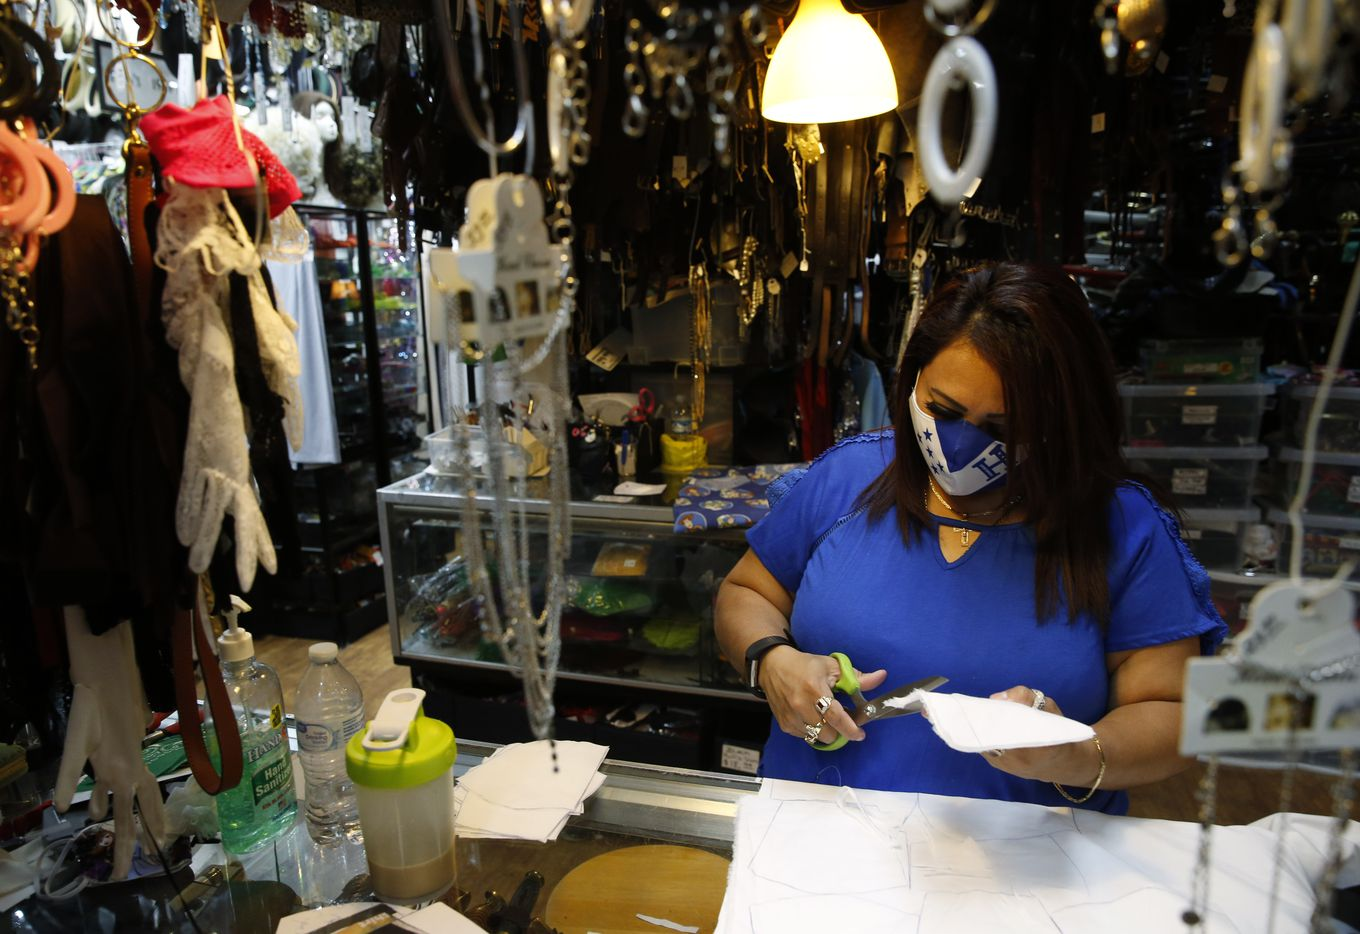 Erika Rangel cuts cloth for making masks at Dallas Vintage Shop in Plano, Texas on Thursday. (Vernon Bryant/The Dallas Morning News)